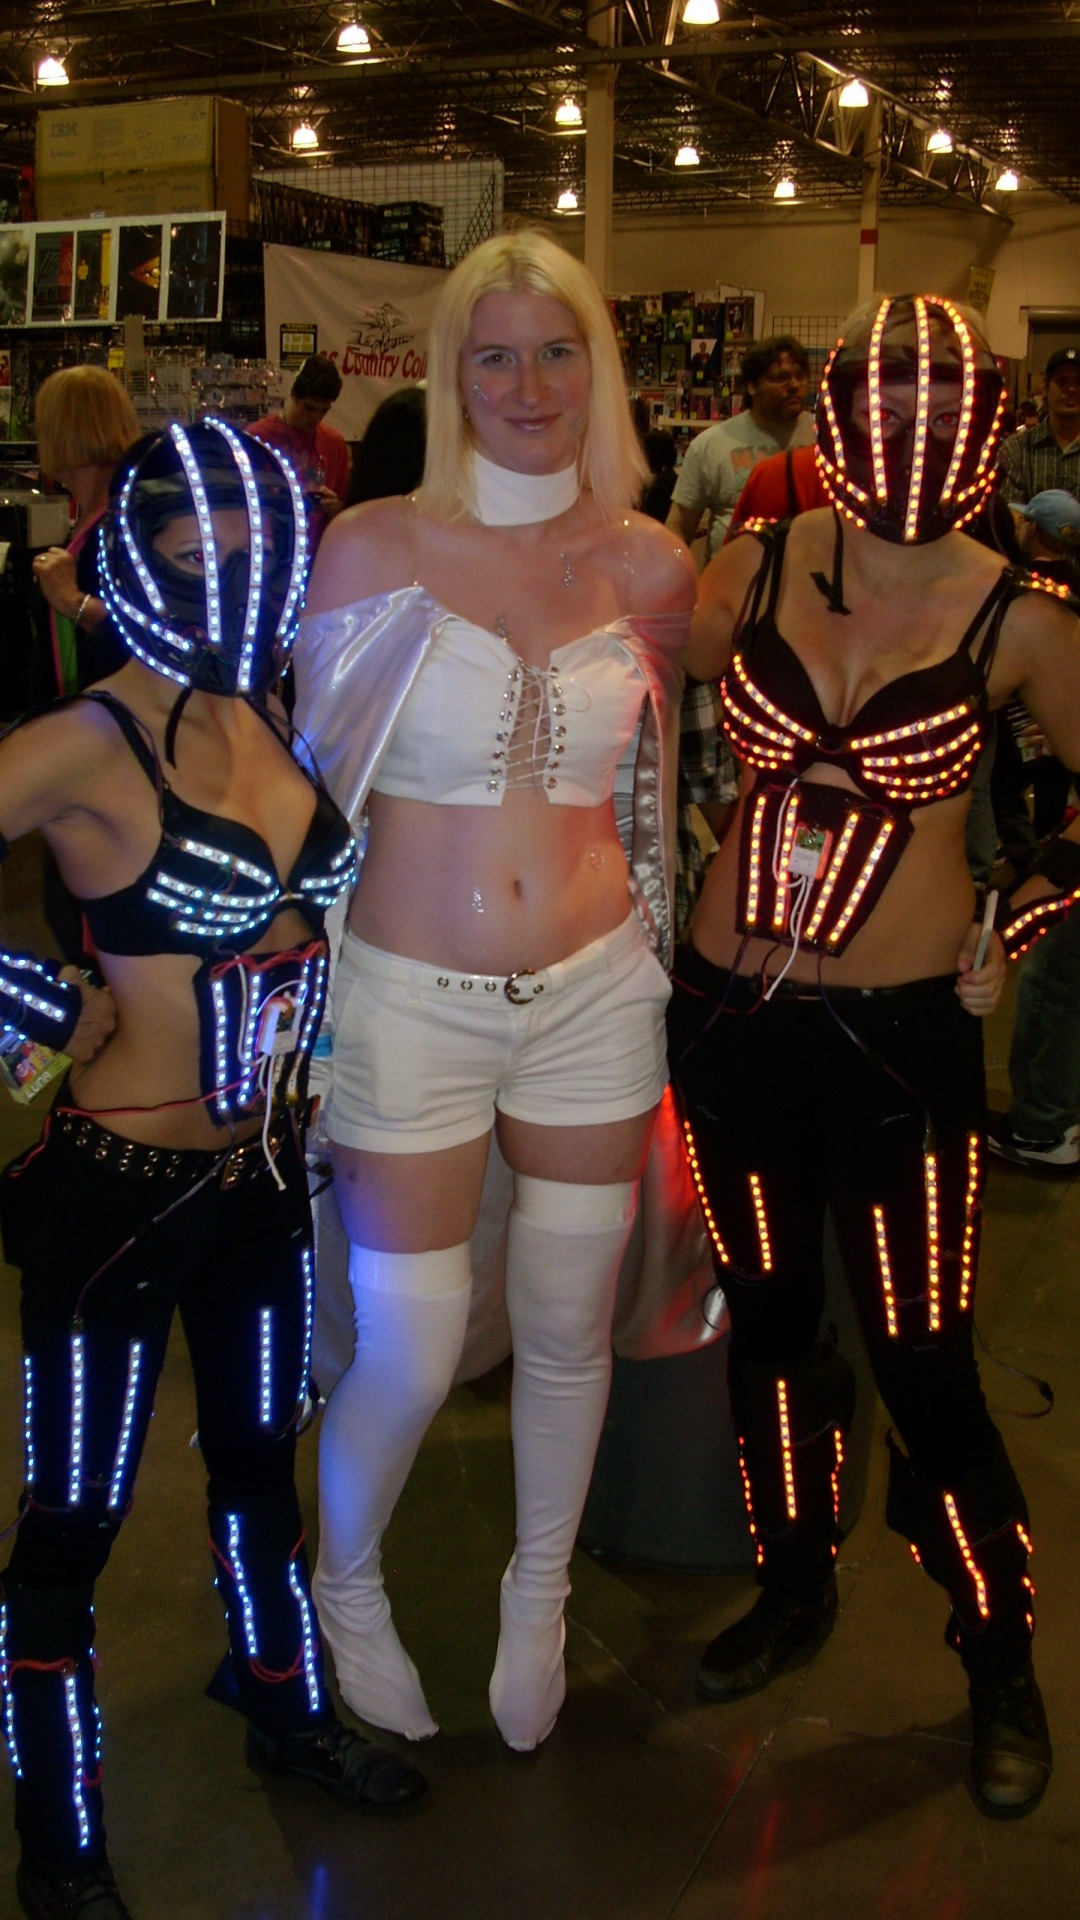 Phoenix, Tron Girls, and Luigi! And Me in my Emma Frost (White Queen) costume. I made a good majority of the costume. The only things I didn't make were the gloves and shorts. So much fun today!